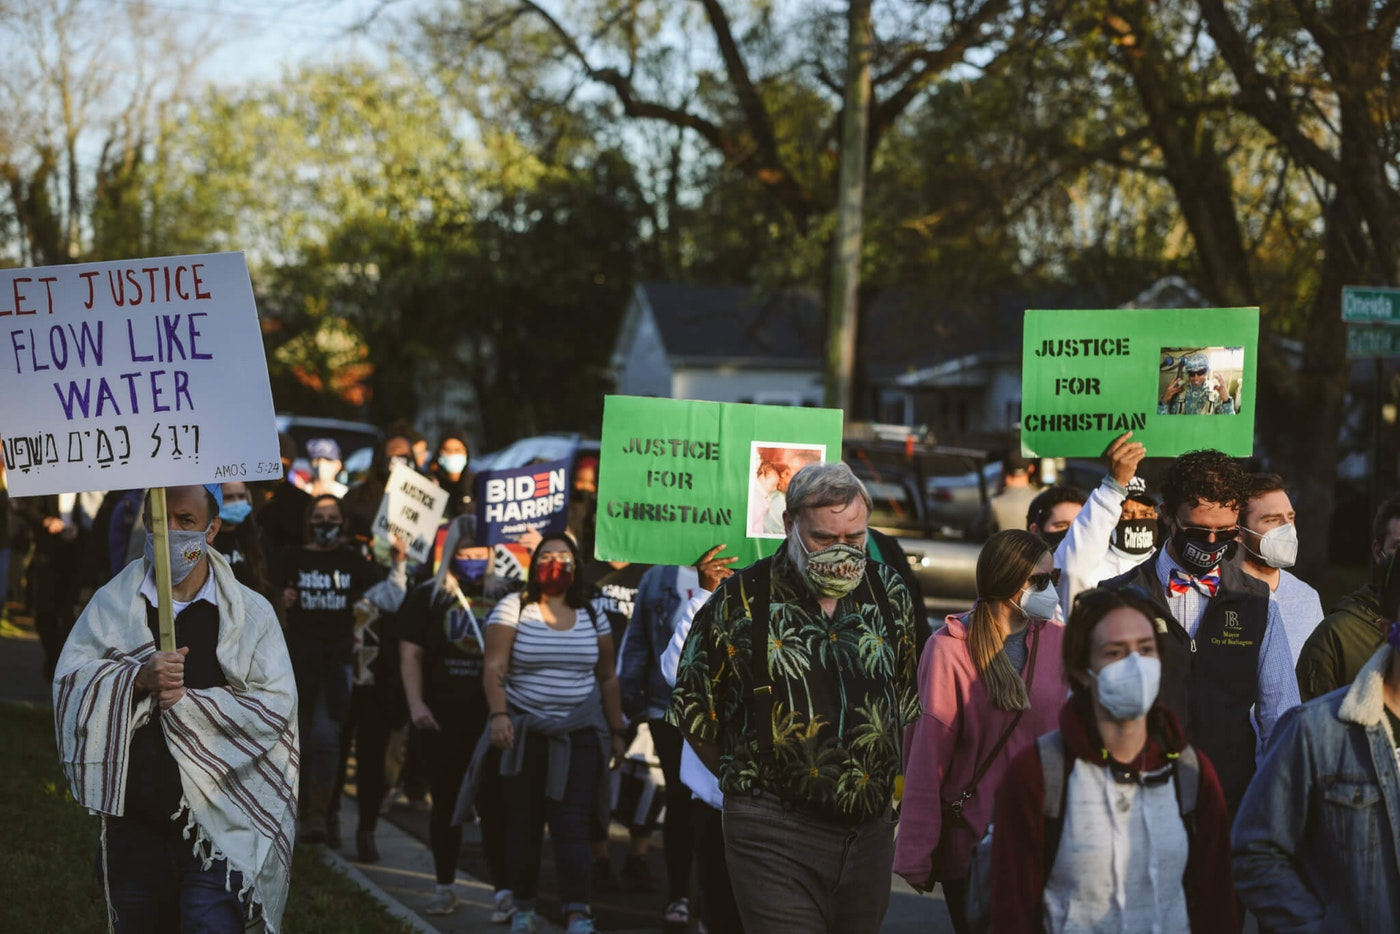 Hundreds of marchers in Graham, N.C. walked to the polls on Election Day and to protest police brutality (Photo by Alvin Jacobs Jr. for Cardinal & Pine.)